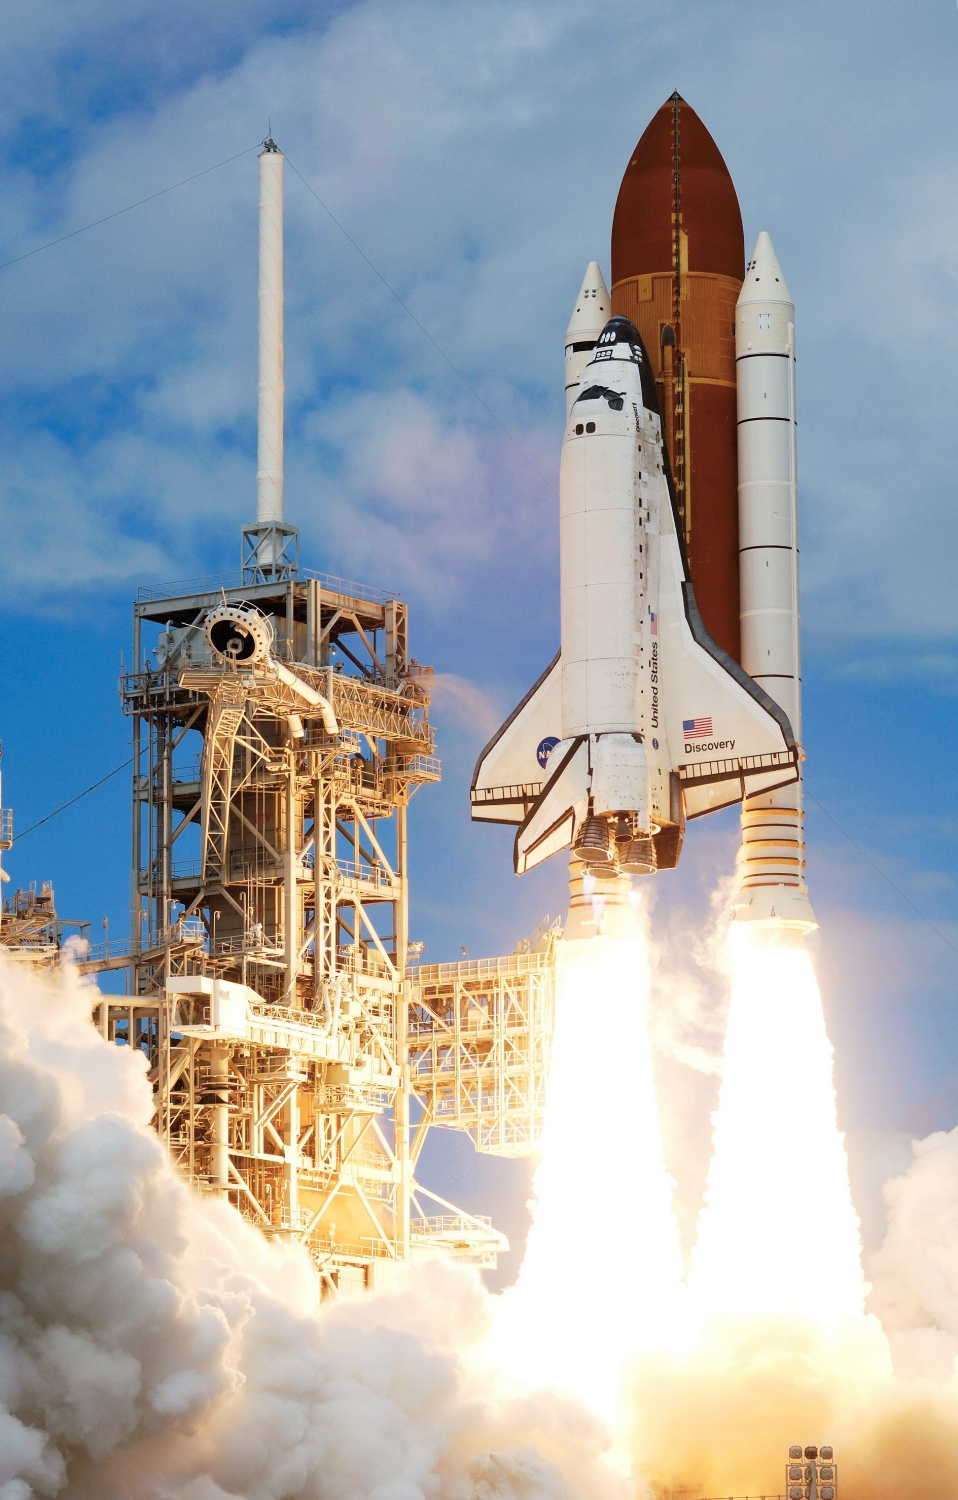 The Space Shuttle stack upon liftoff, STS-120 in 2007. I was at the Visitor's Complex for this launch. (Courtesy of NASA)